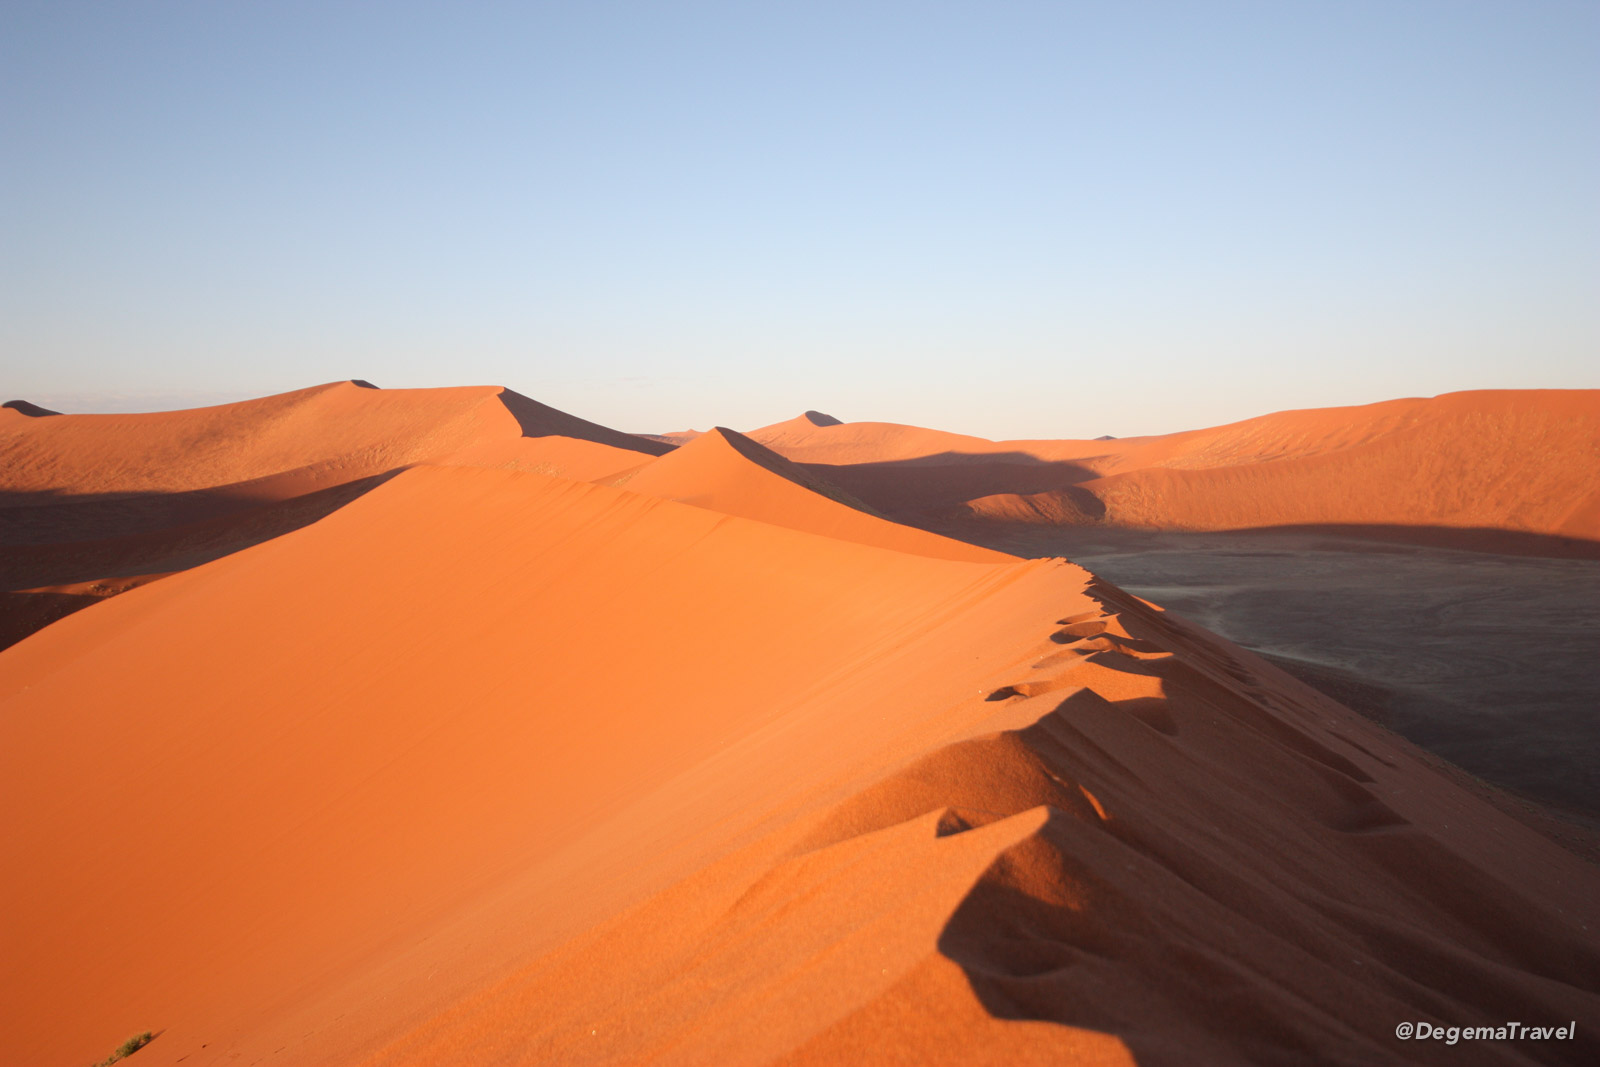 The top of Dune 45 in Namibia